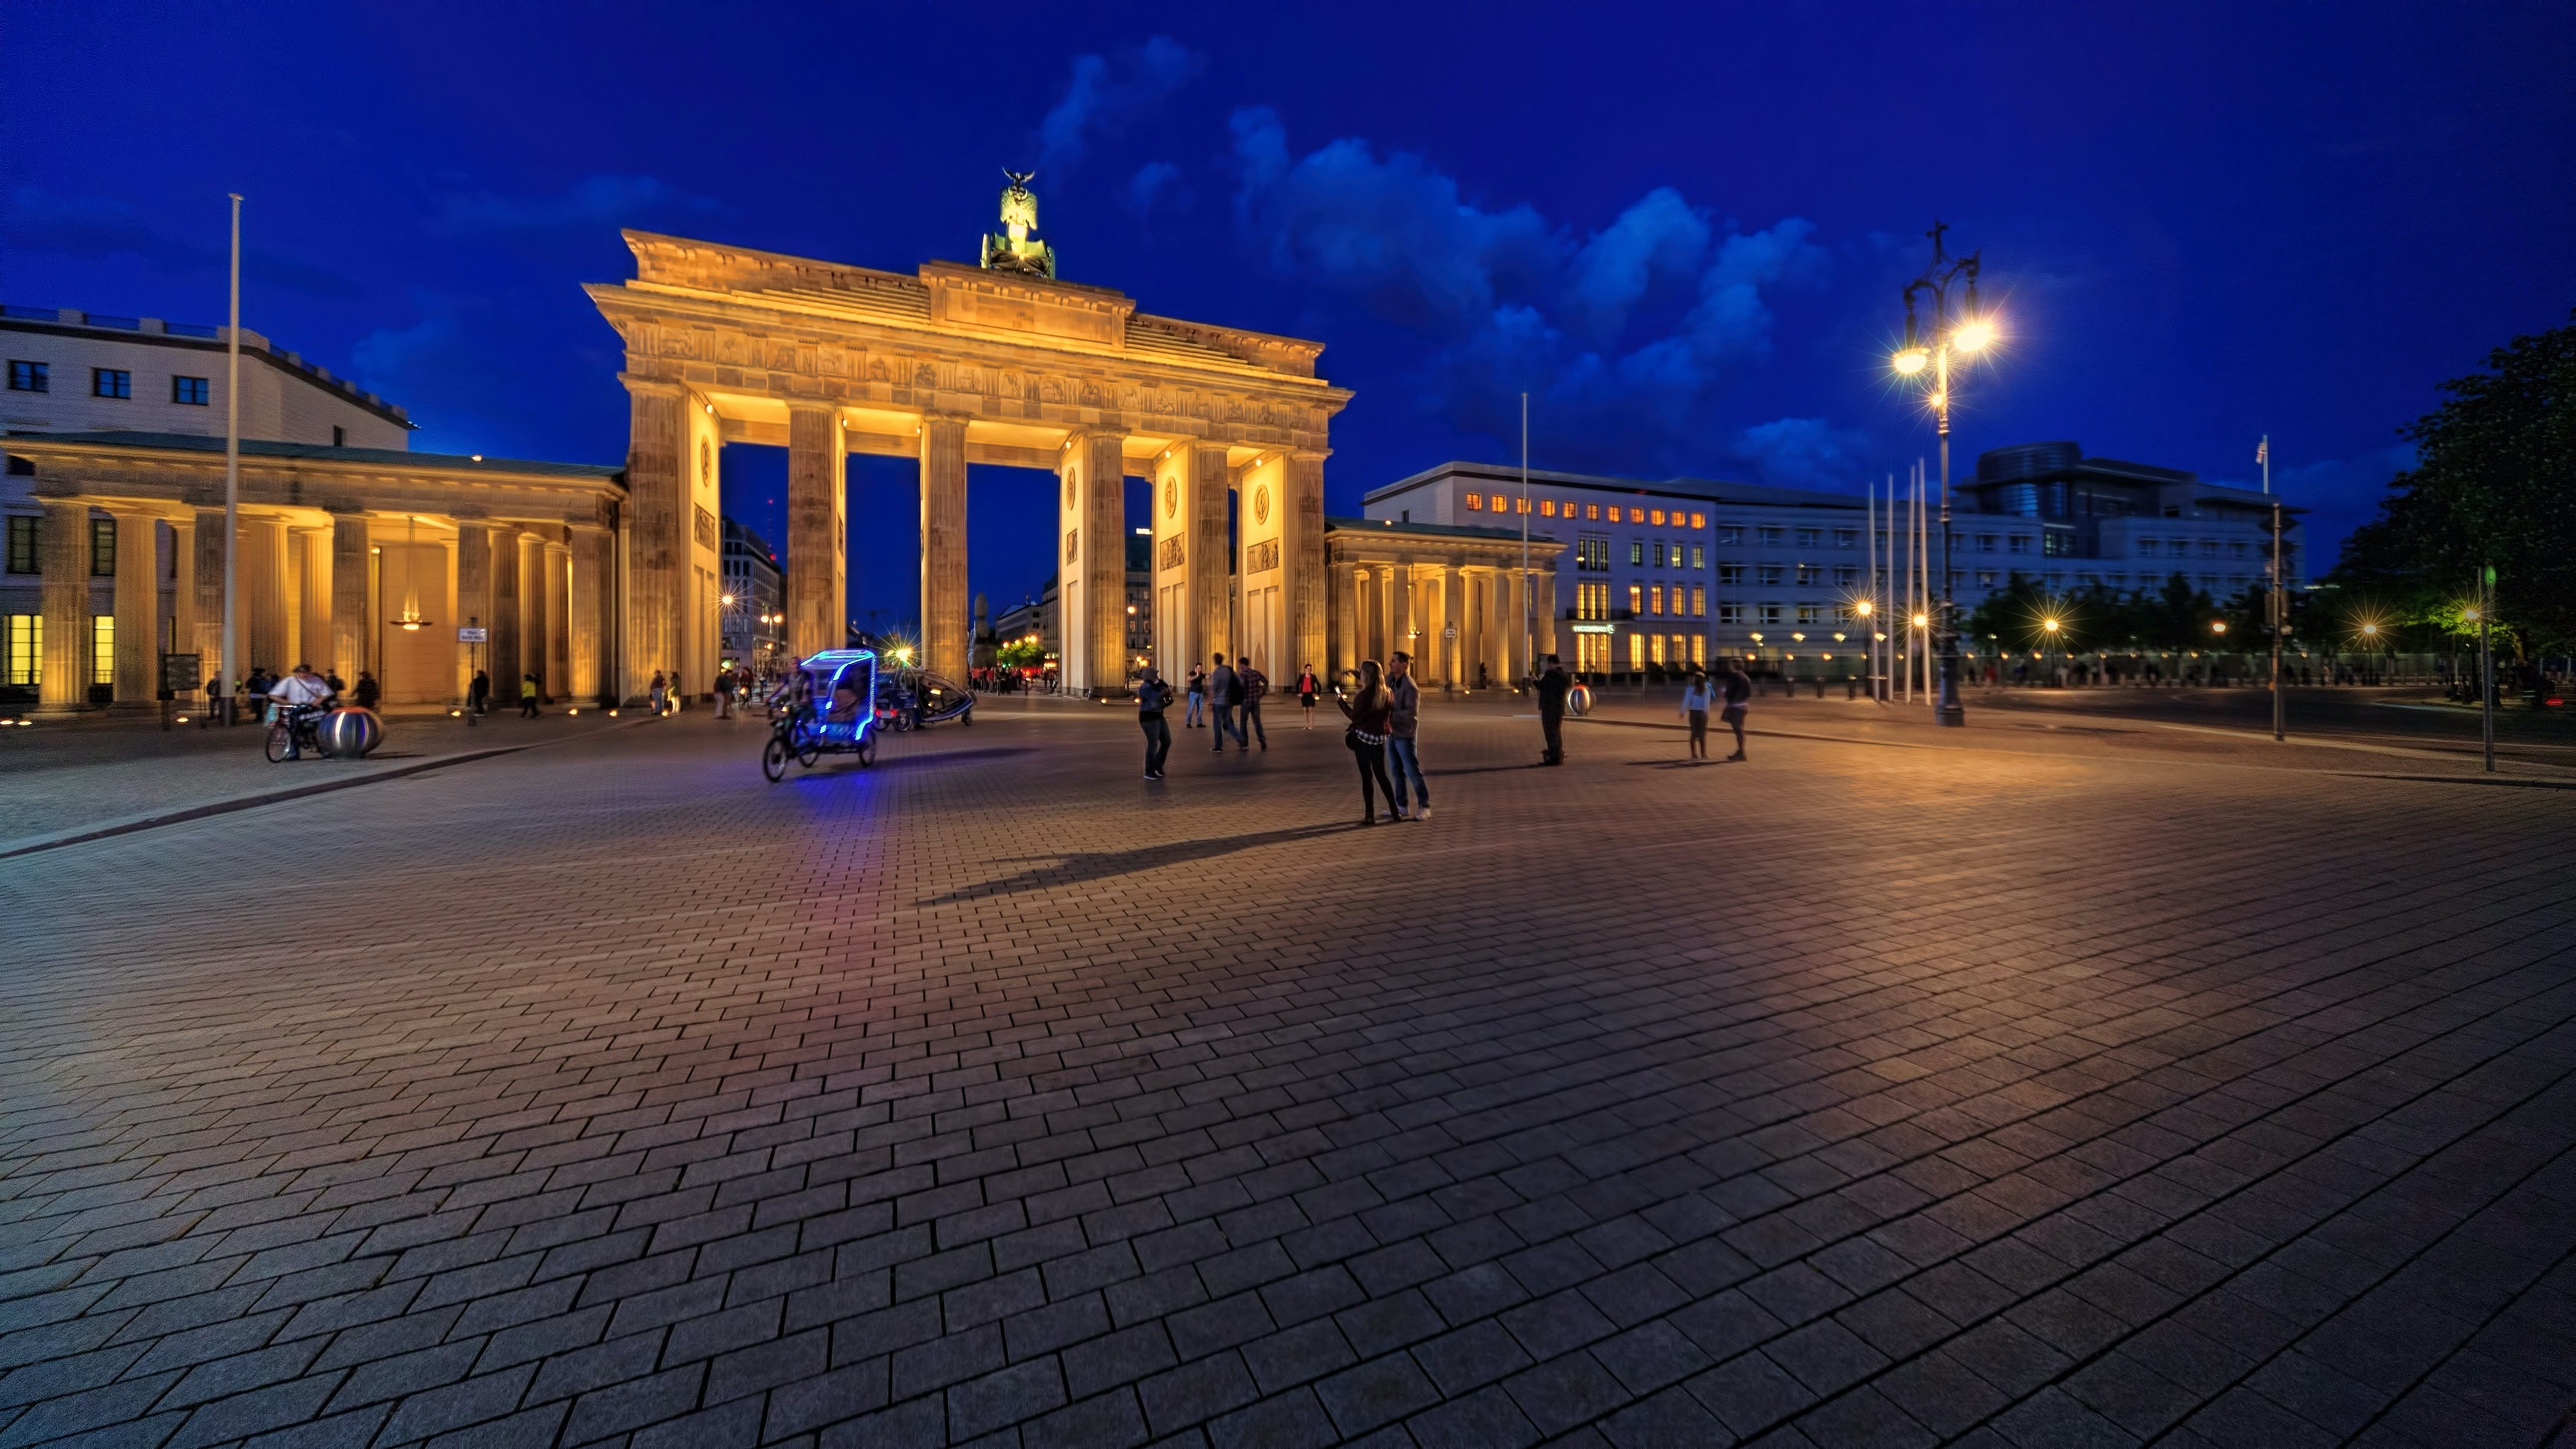 Brandenburgh Gate, Germany